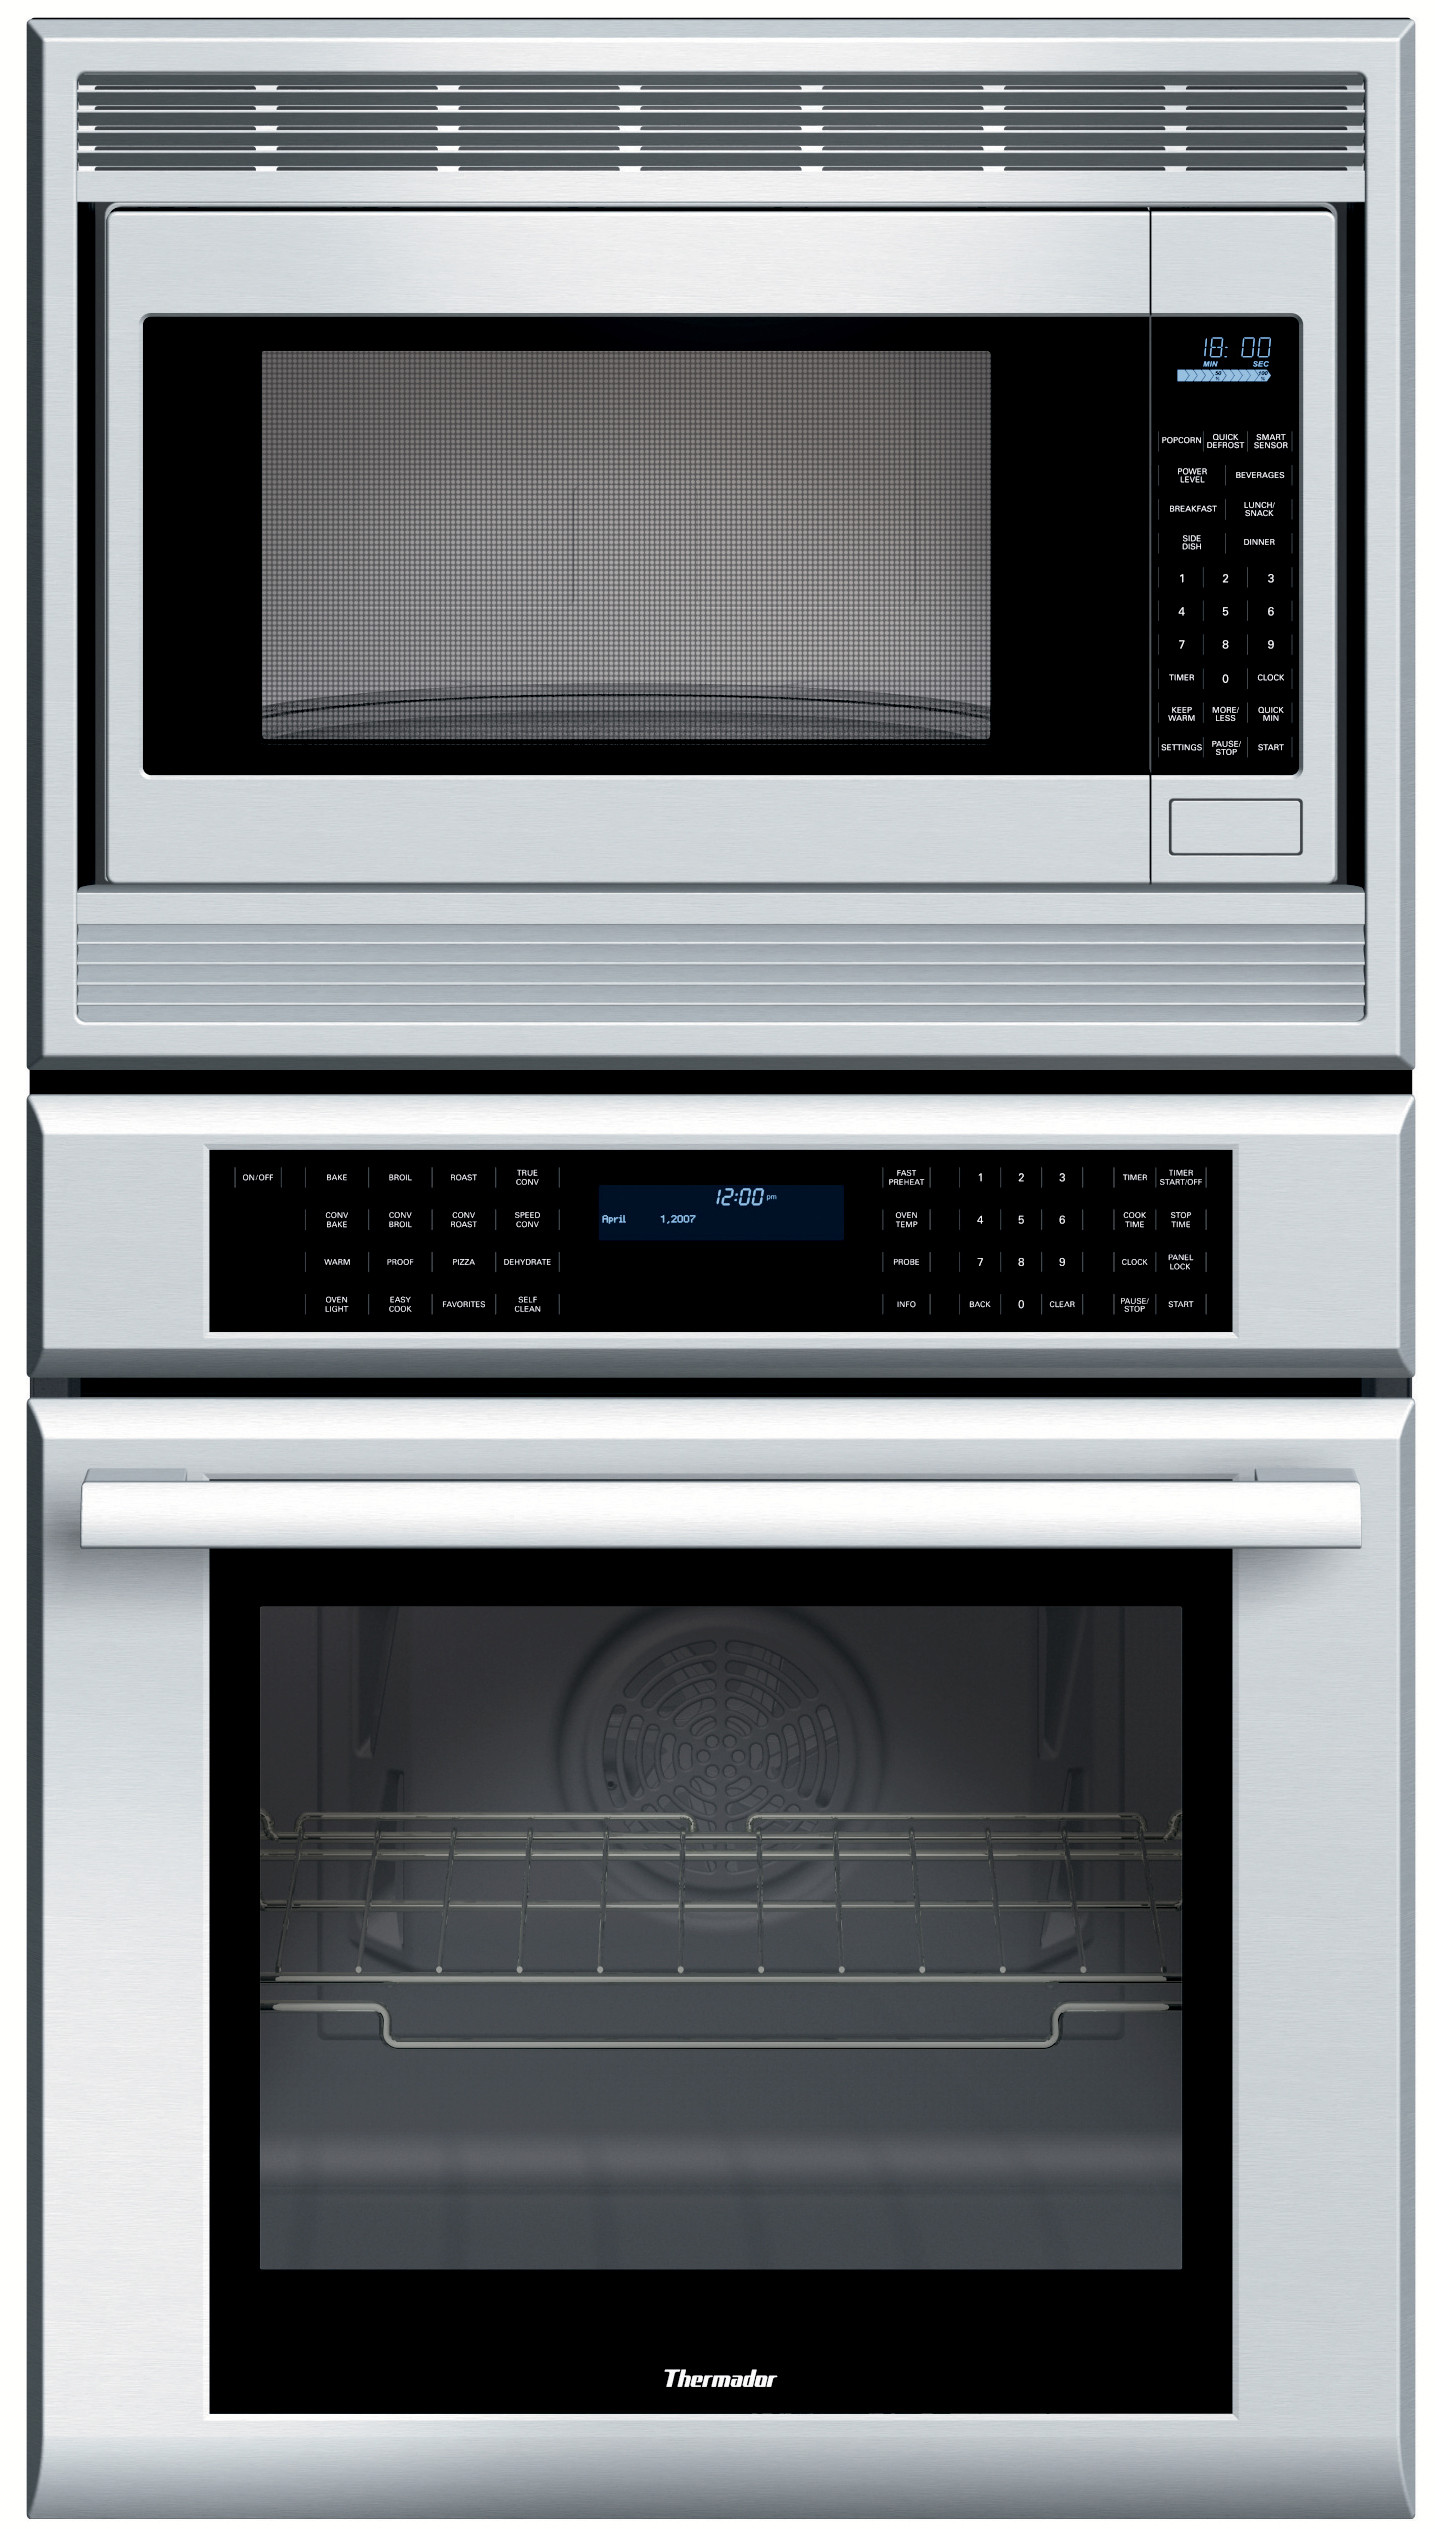 Thermador Mem271es 27 Inch Combination Wall Oven With 1200